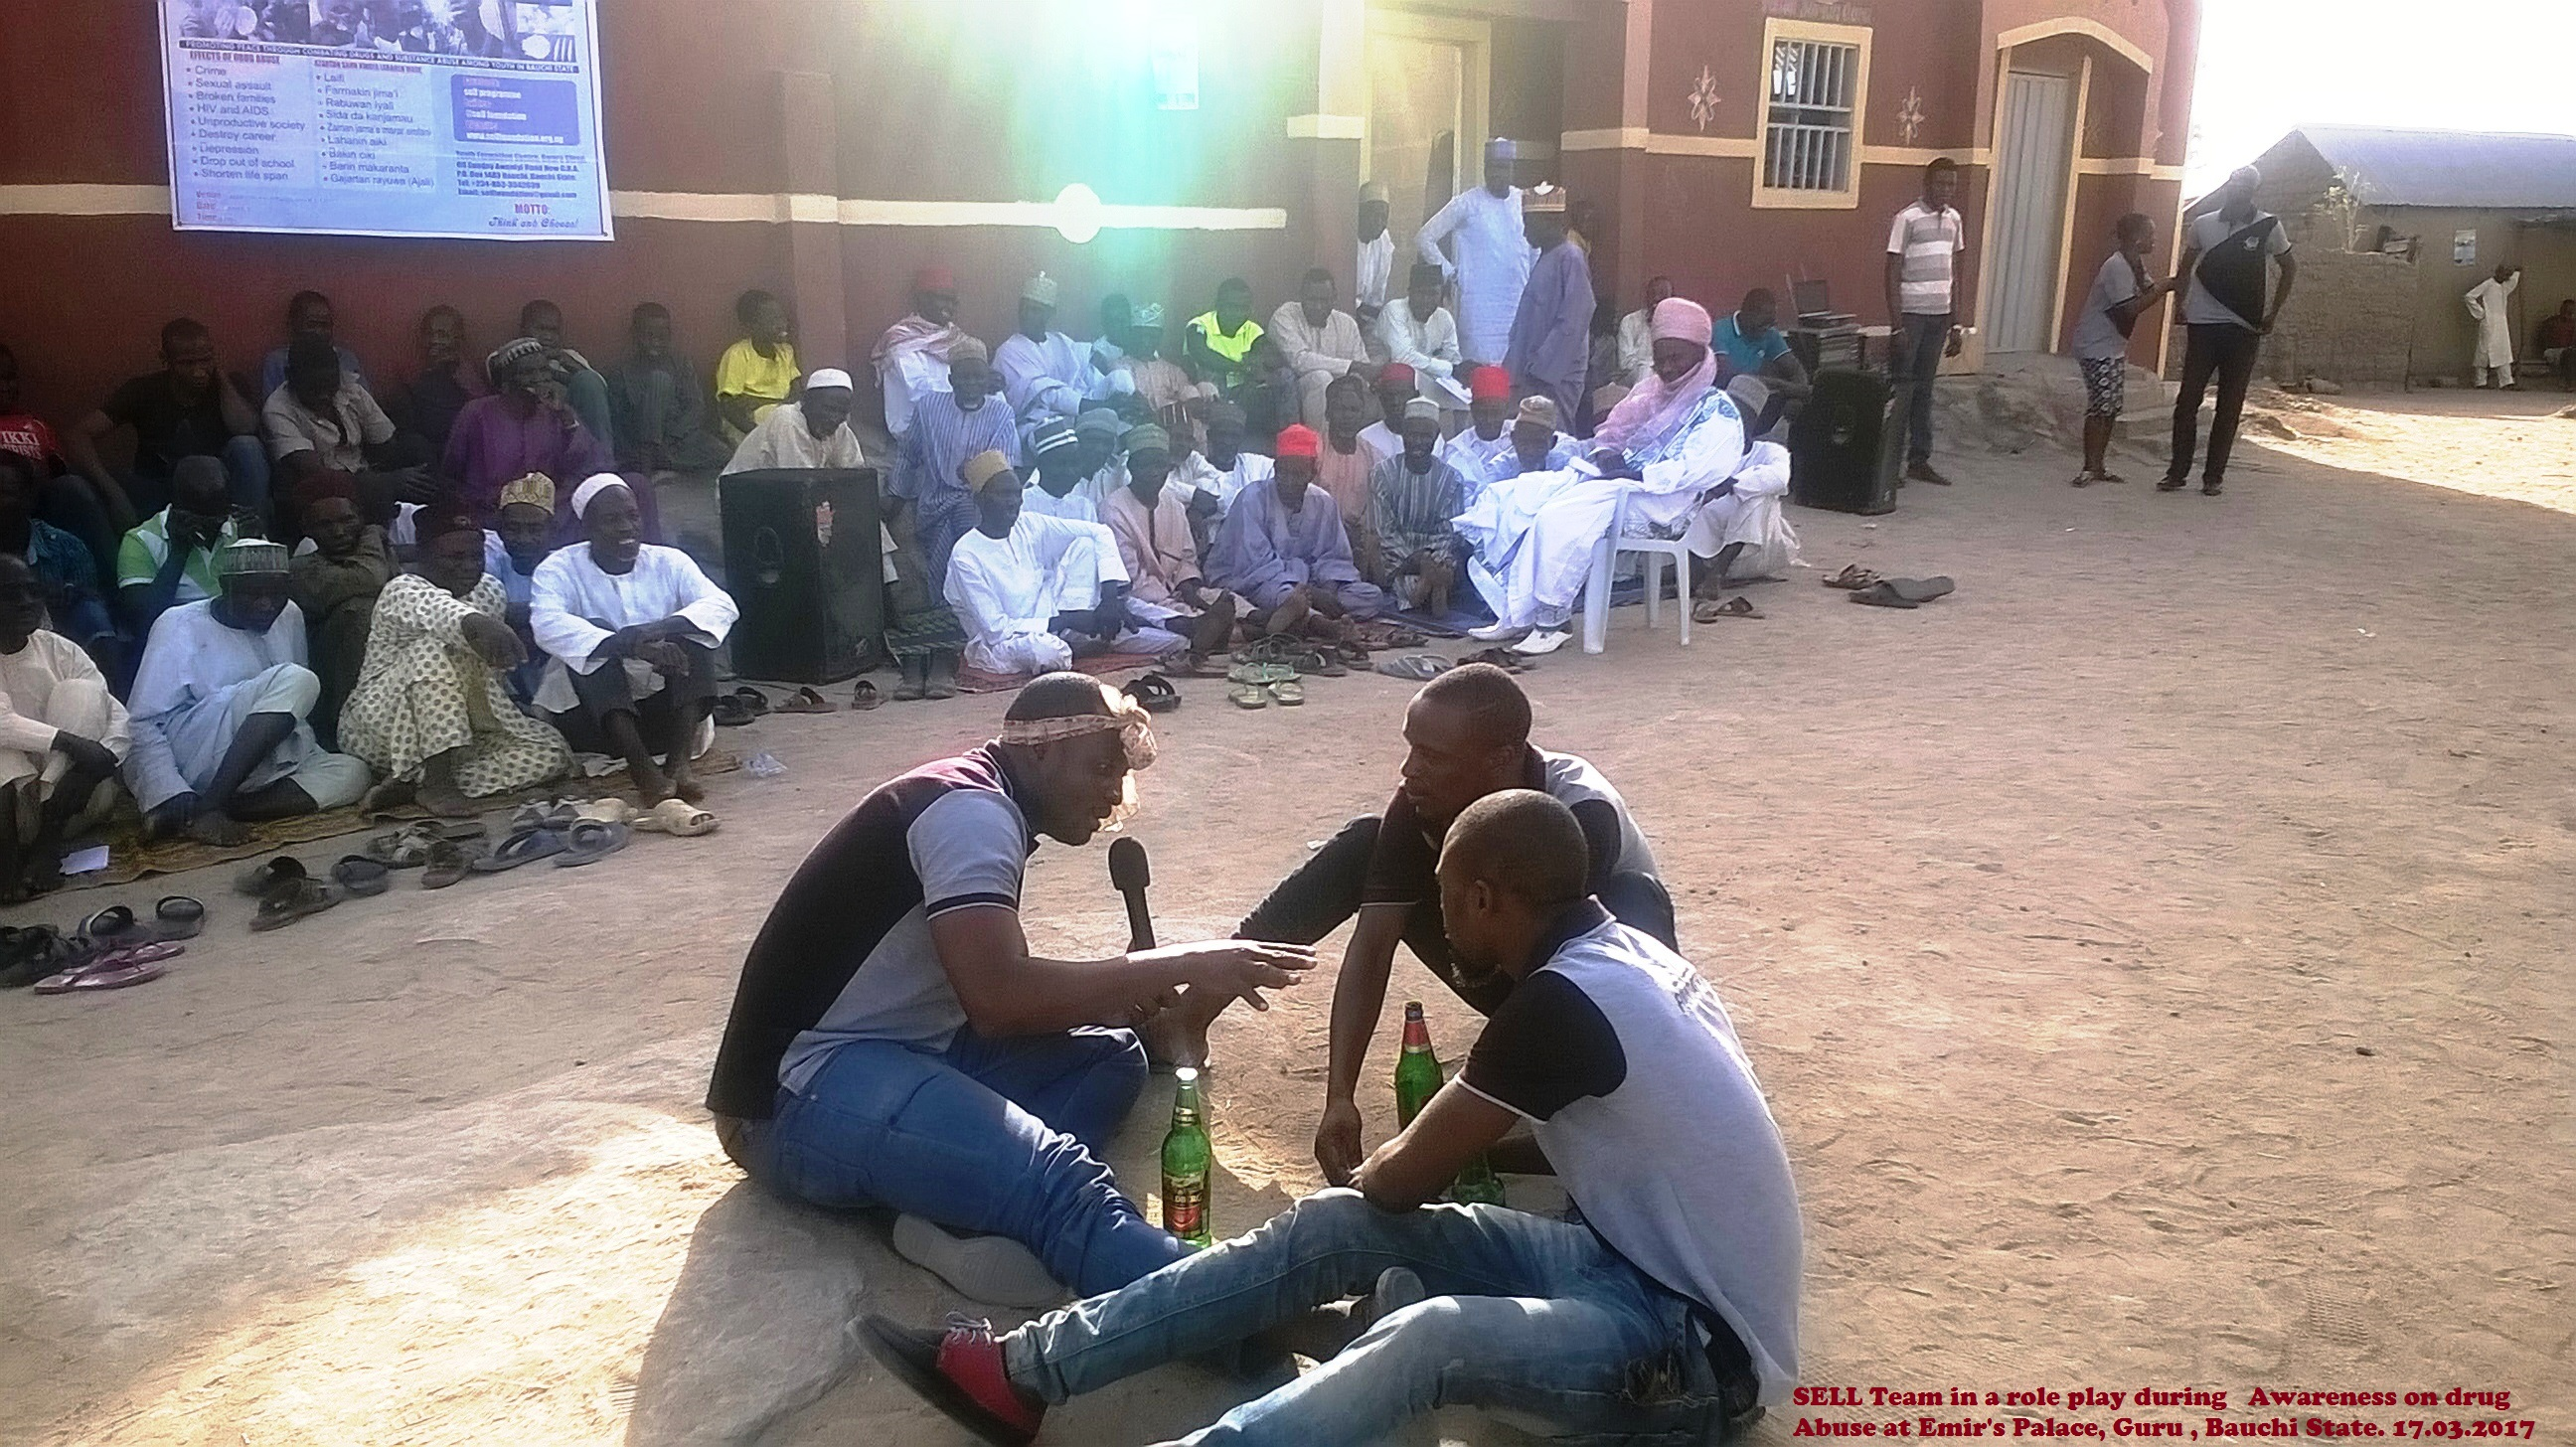 SELL Team in a role play during Awareness on drug Abuse at Emir's Palace, Guru , Bauchi State. 17.03.2017